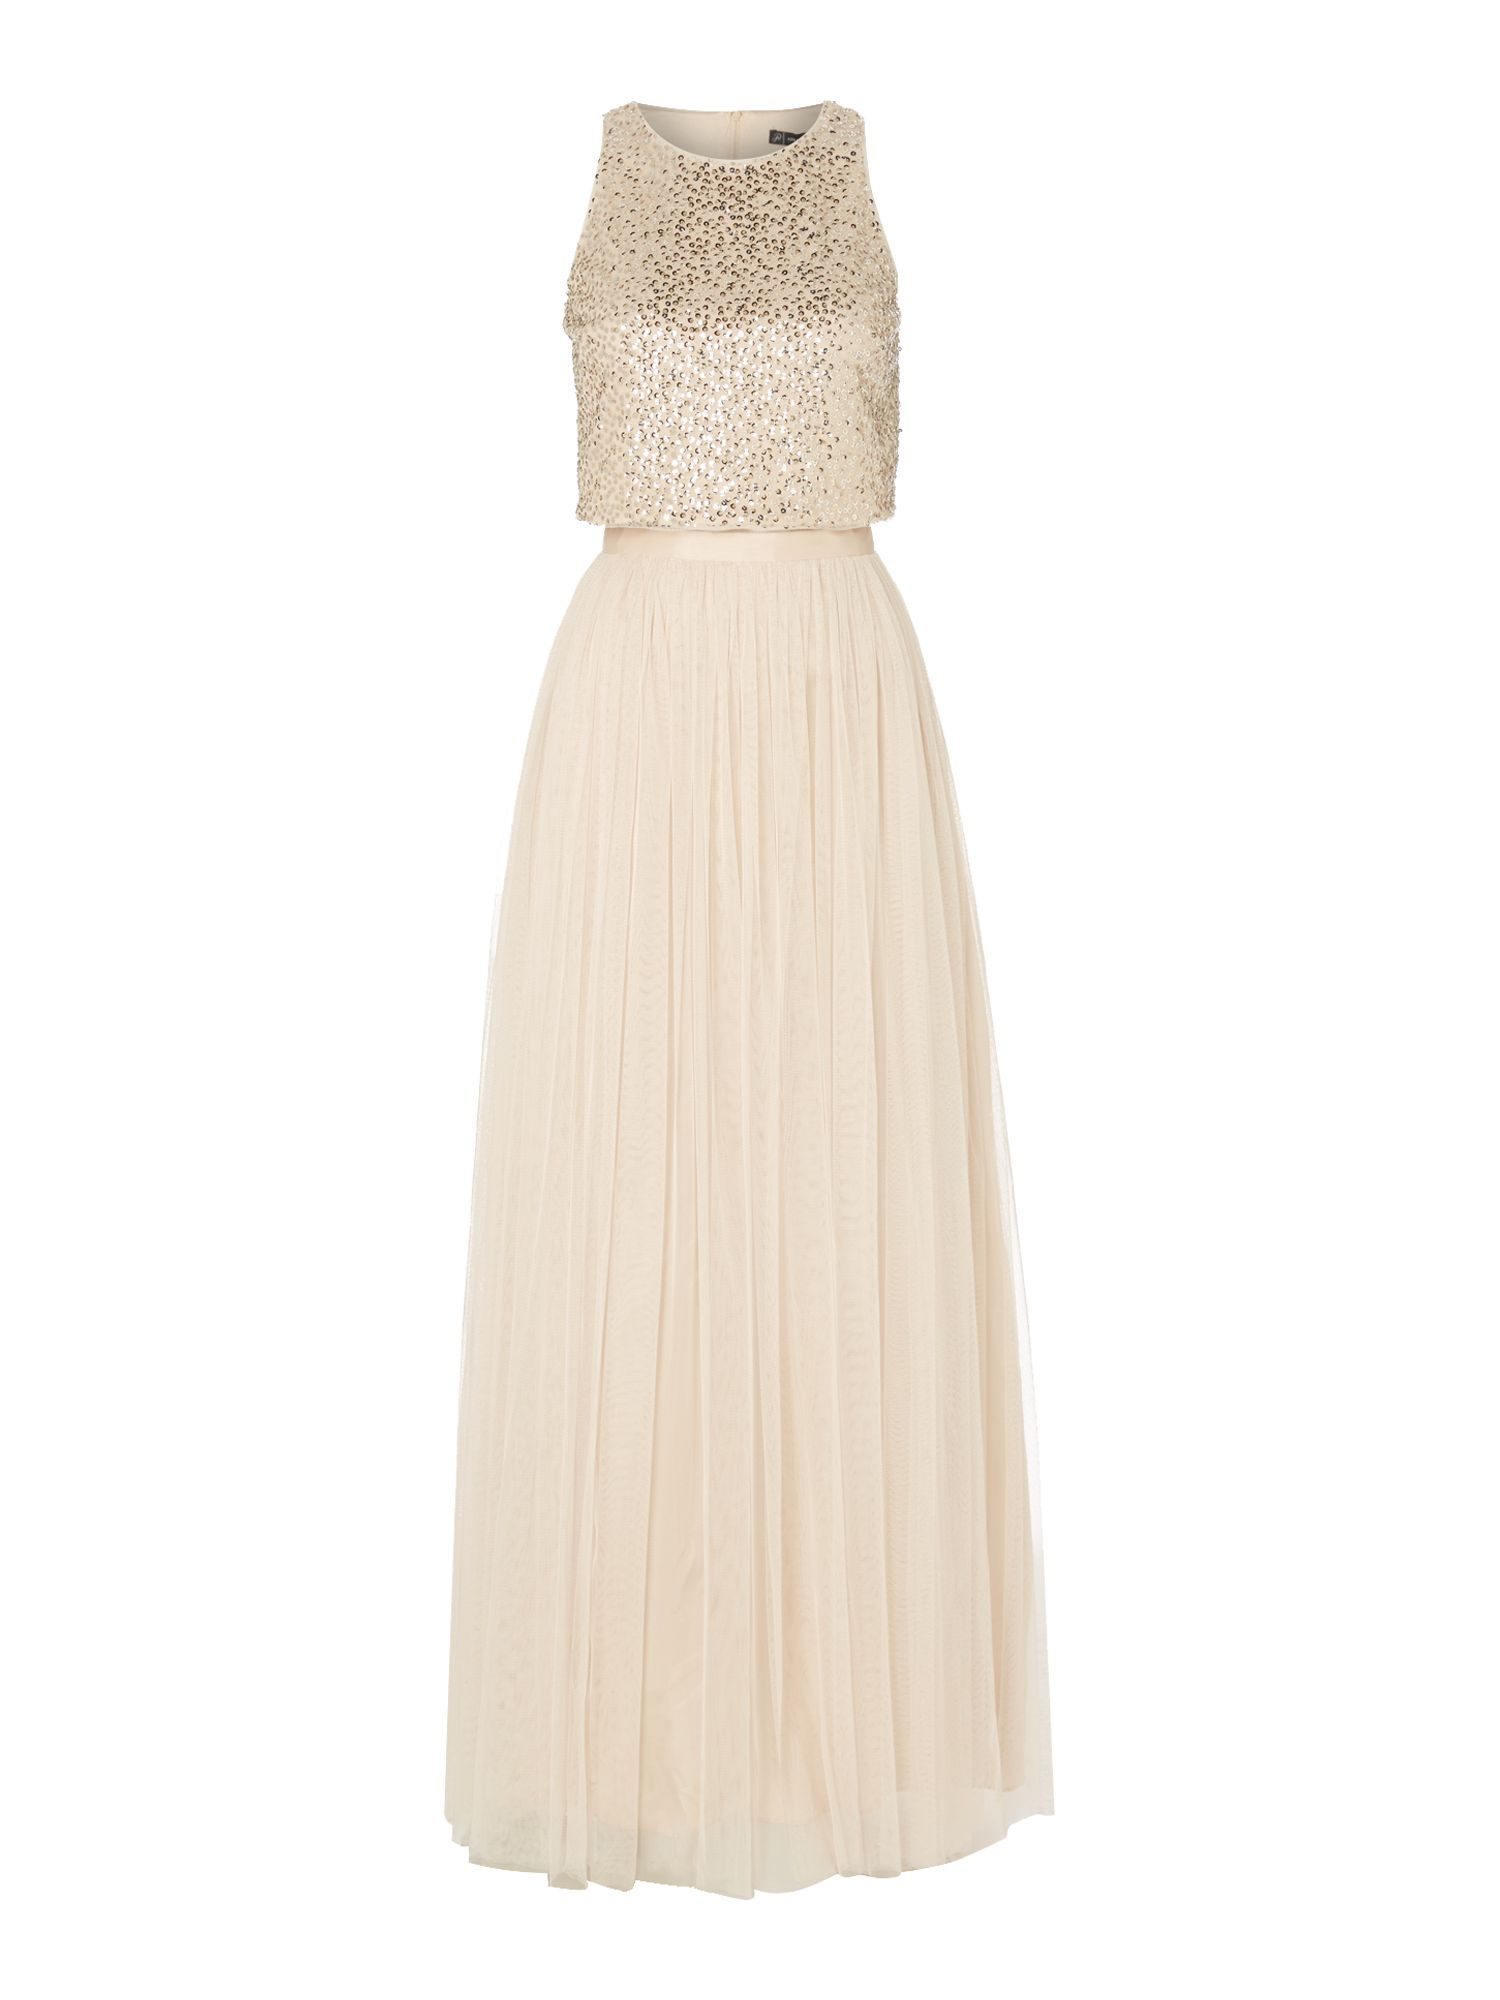 Adrianna Papell 2 Piece Sequin Top and Tulle Maxi Skirt, Nude